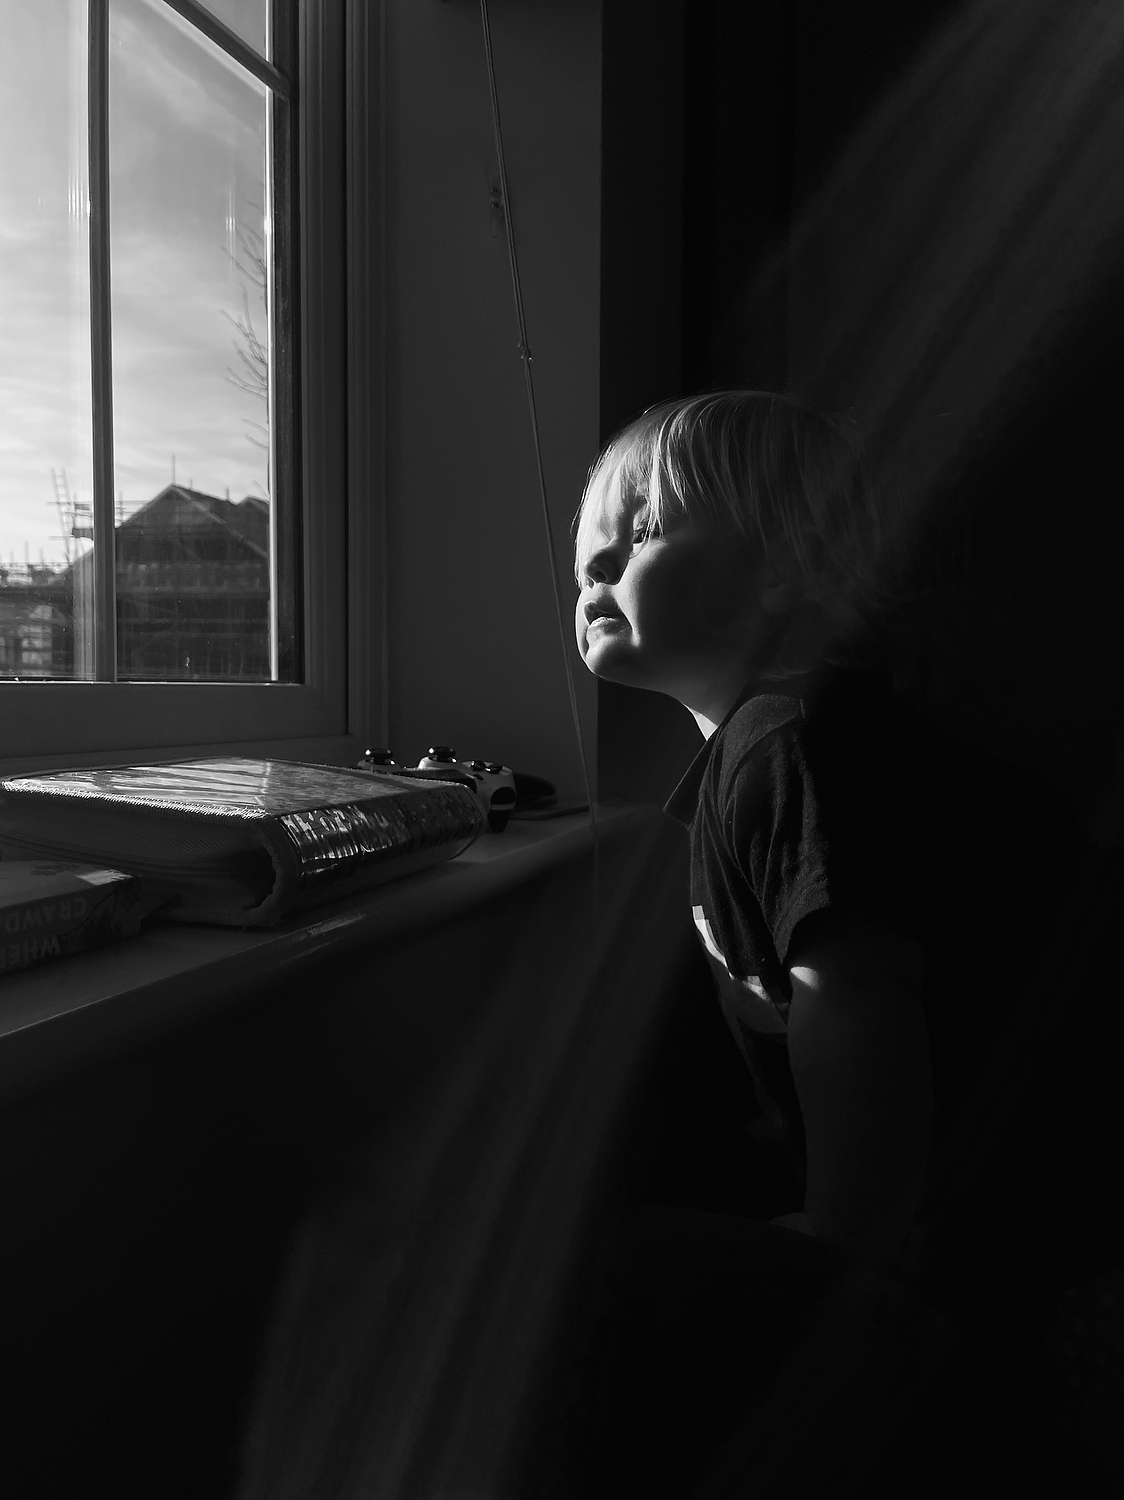 Child looking out of window, black and white - awesome iphone photos of your kids